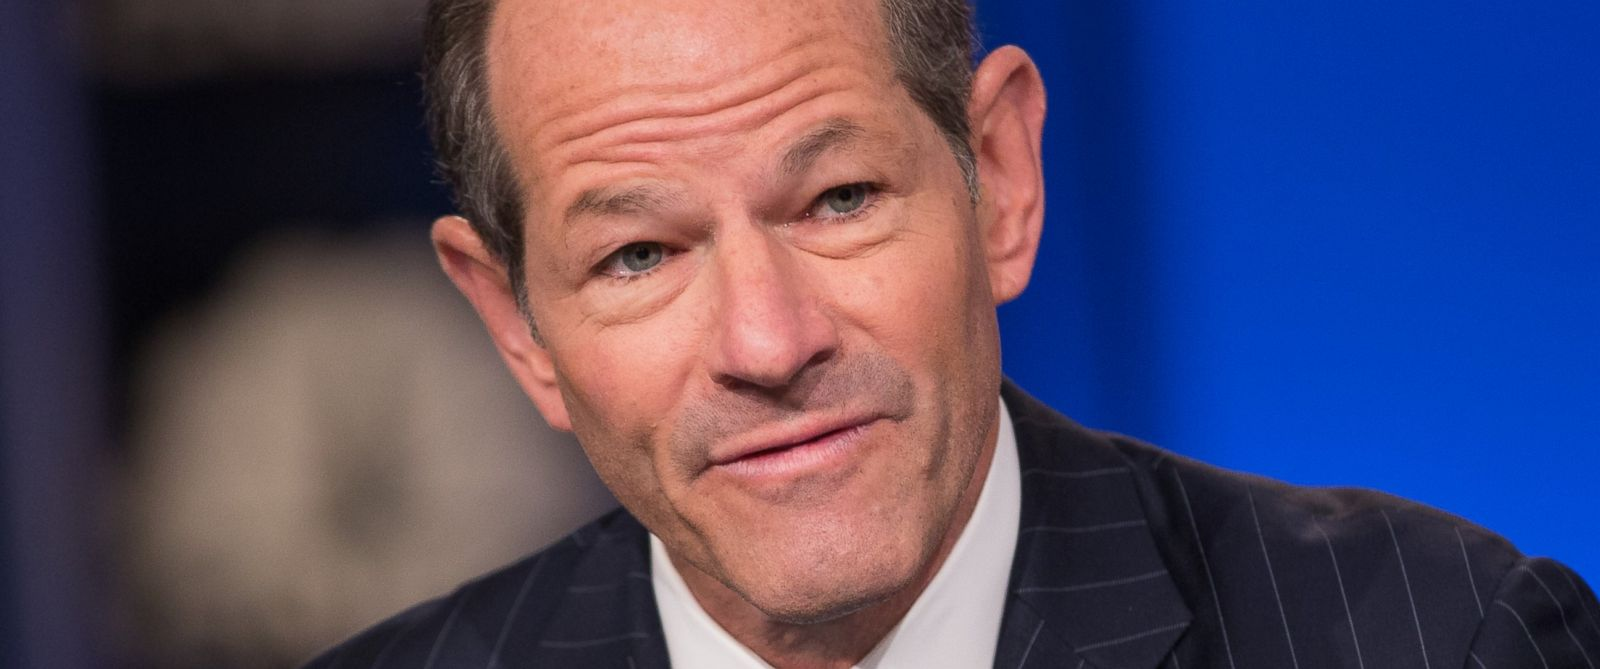 PHOTO:Eliot Spitzer is pictured during an interview on Jan. 5, 2015